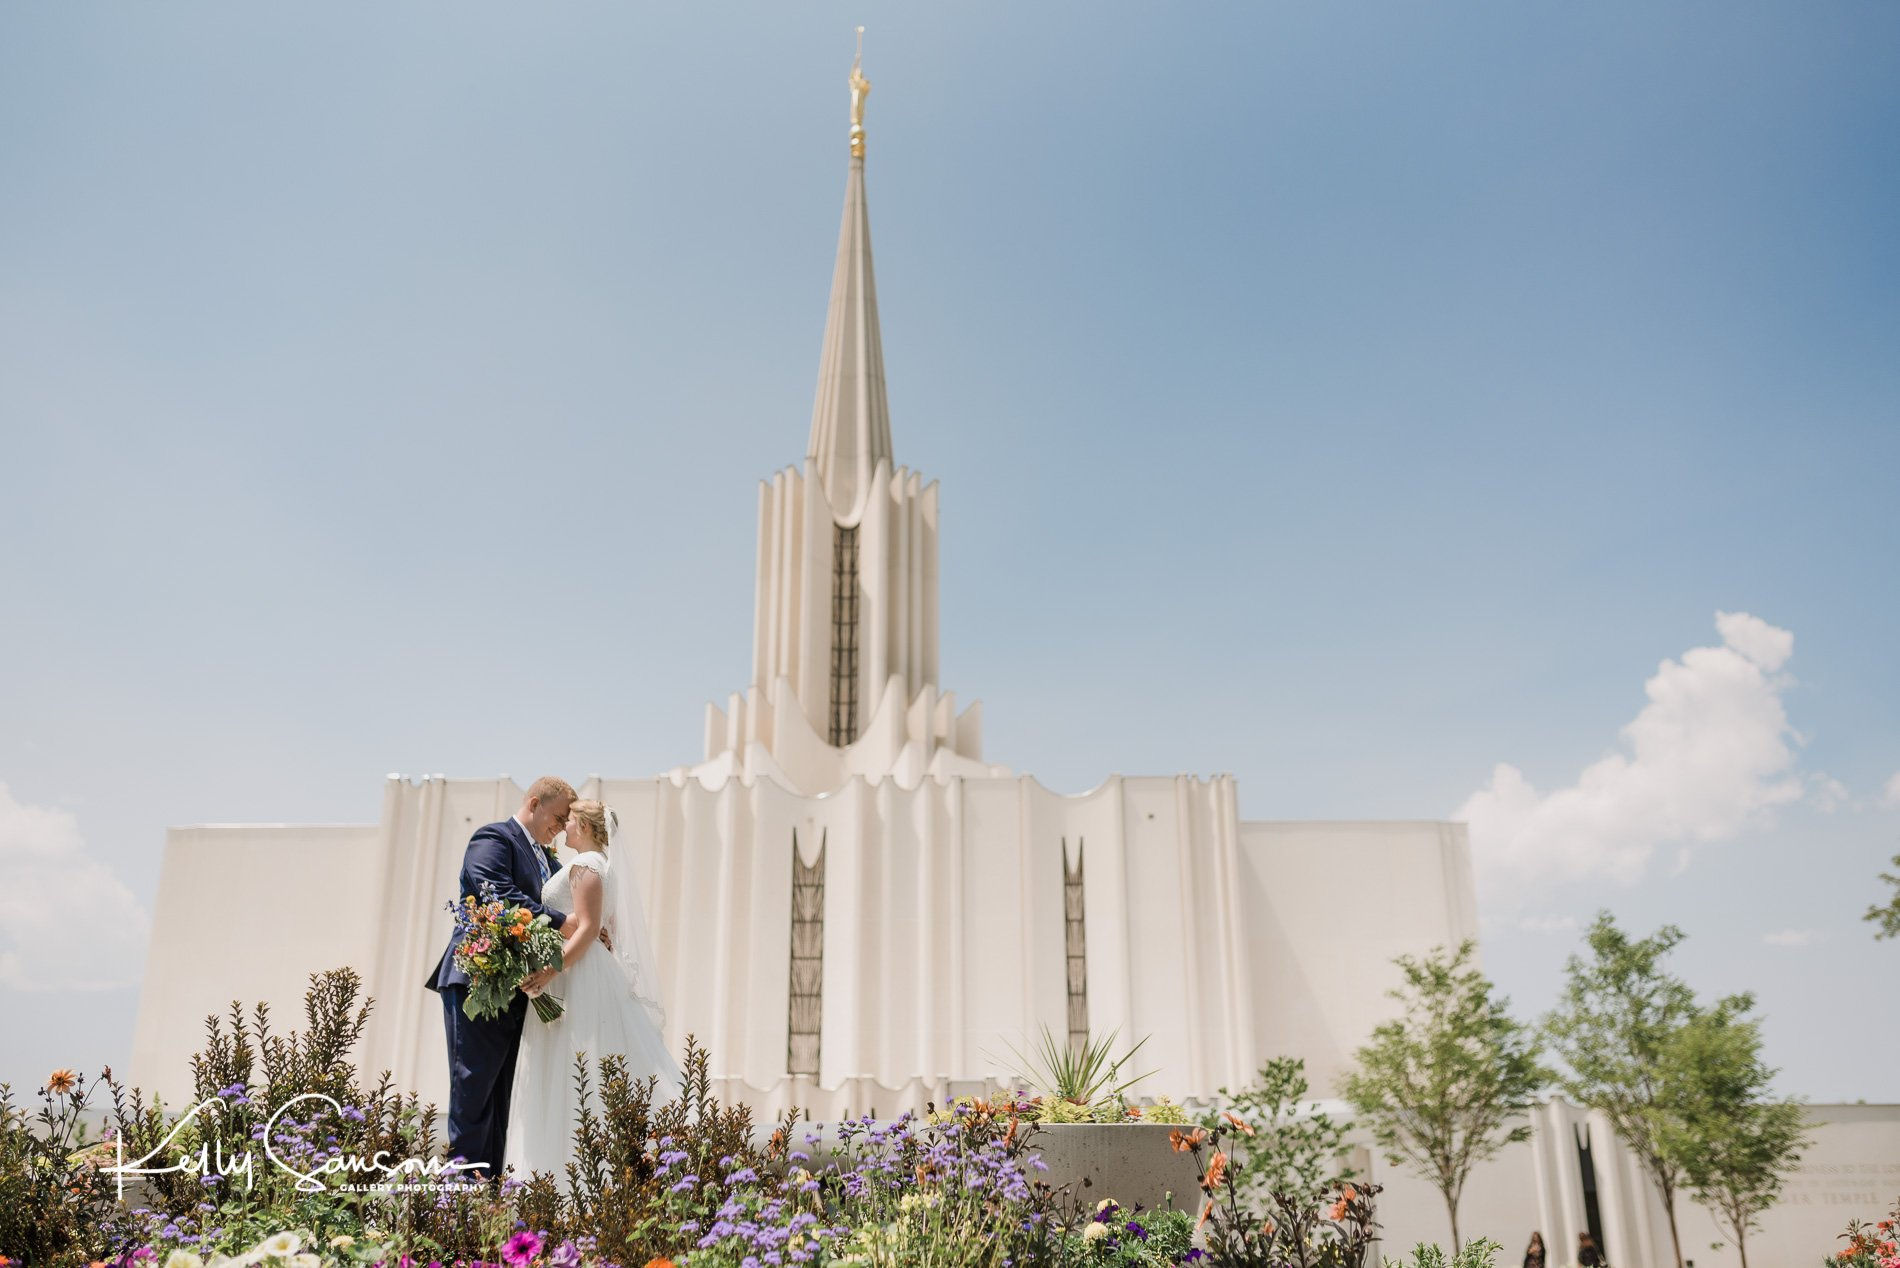 A bride and groom in love for Jordan river temple wedding photography.